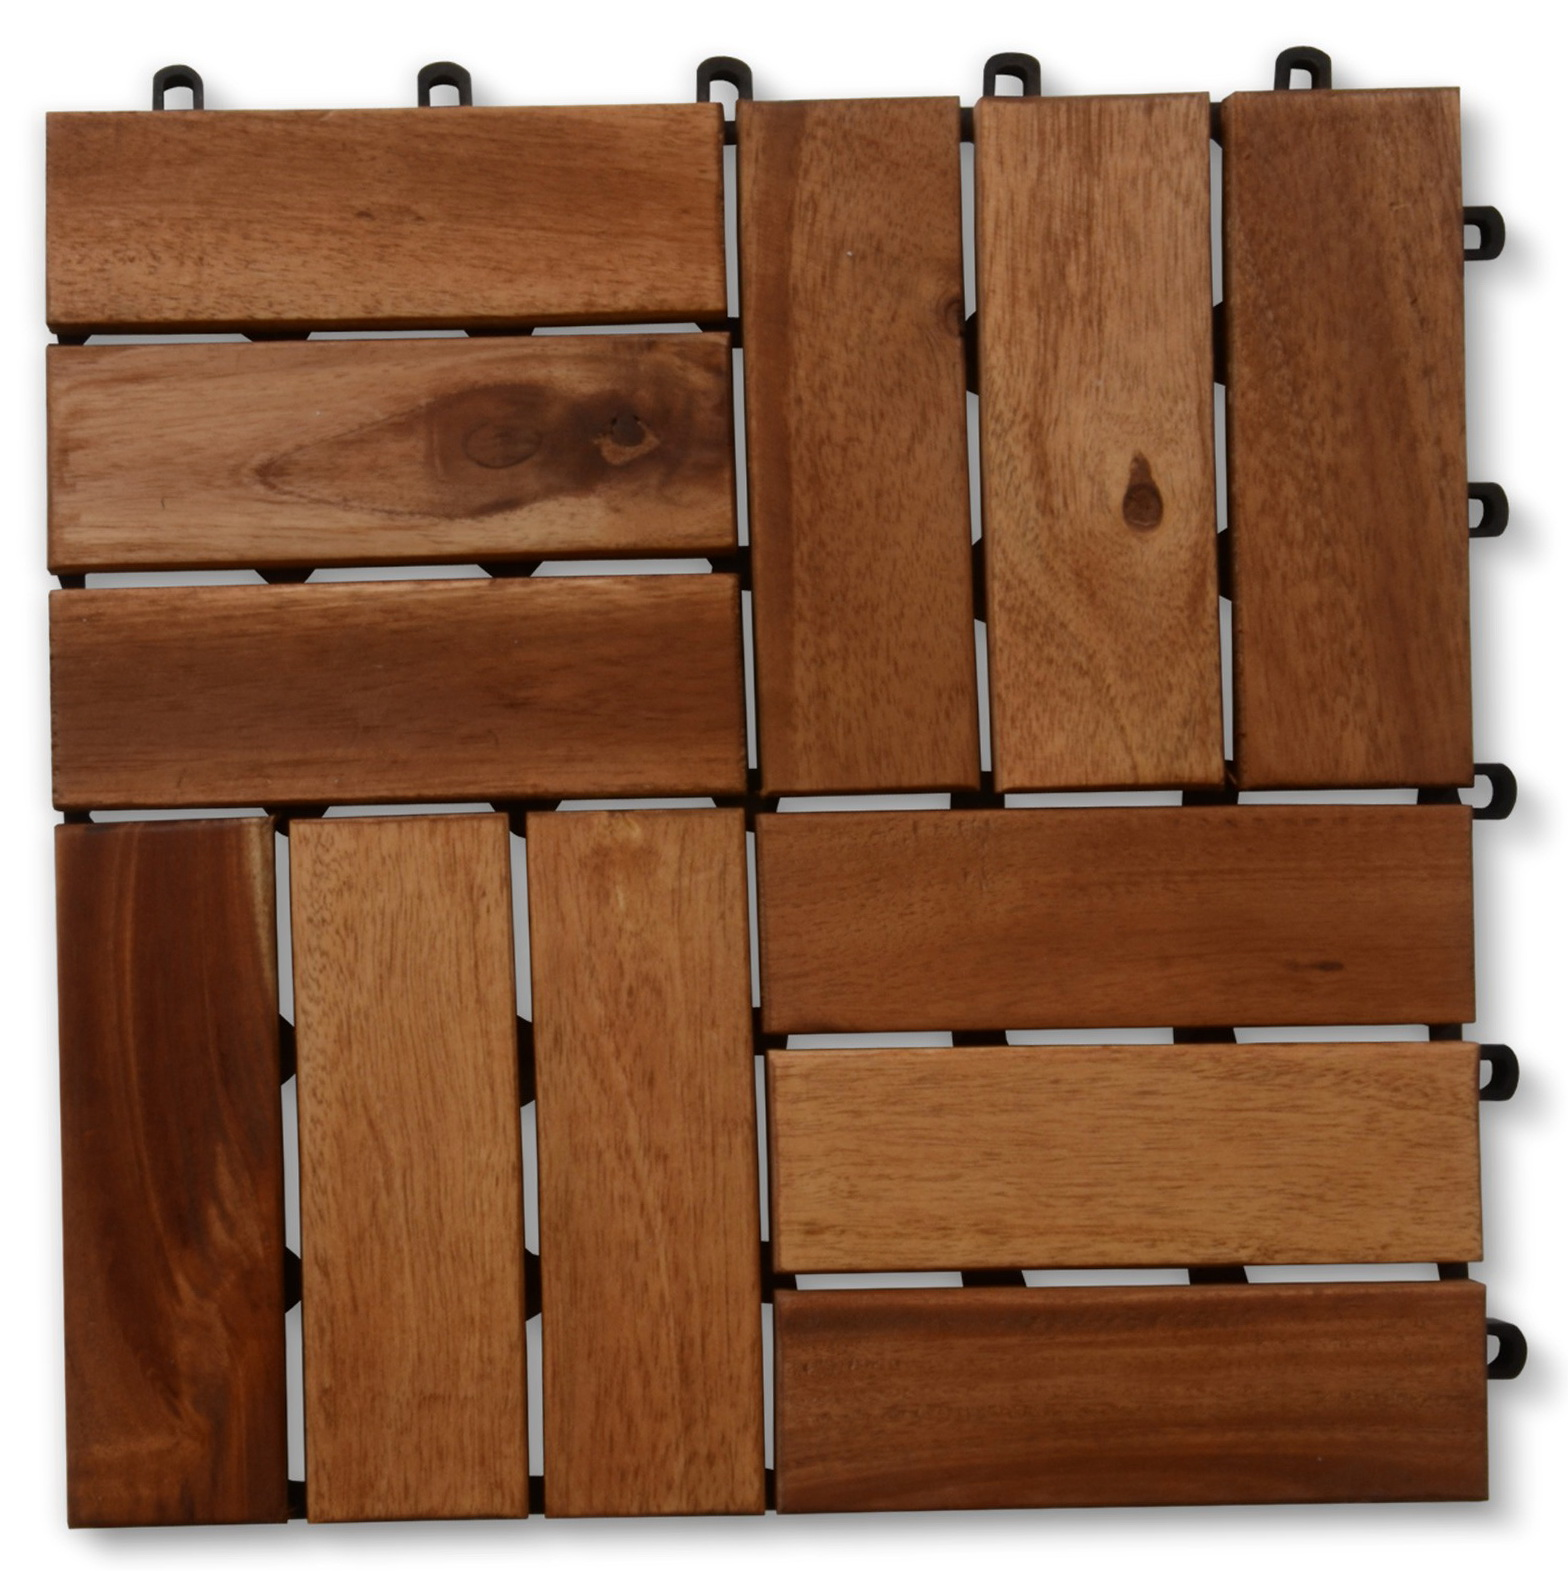 Interlocking Deck Tiles Home Depot Interlocking Wood Deck Tiles Home Depot  Home Design Ideas